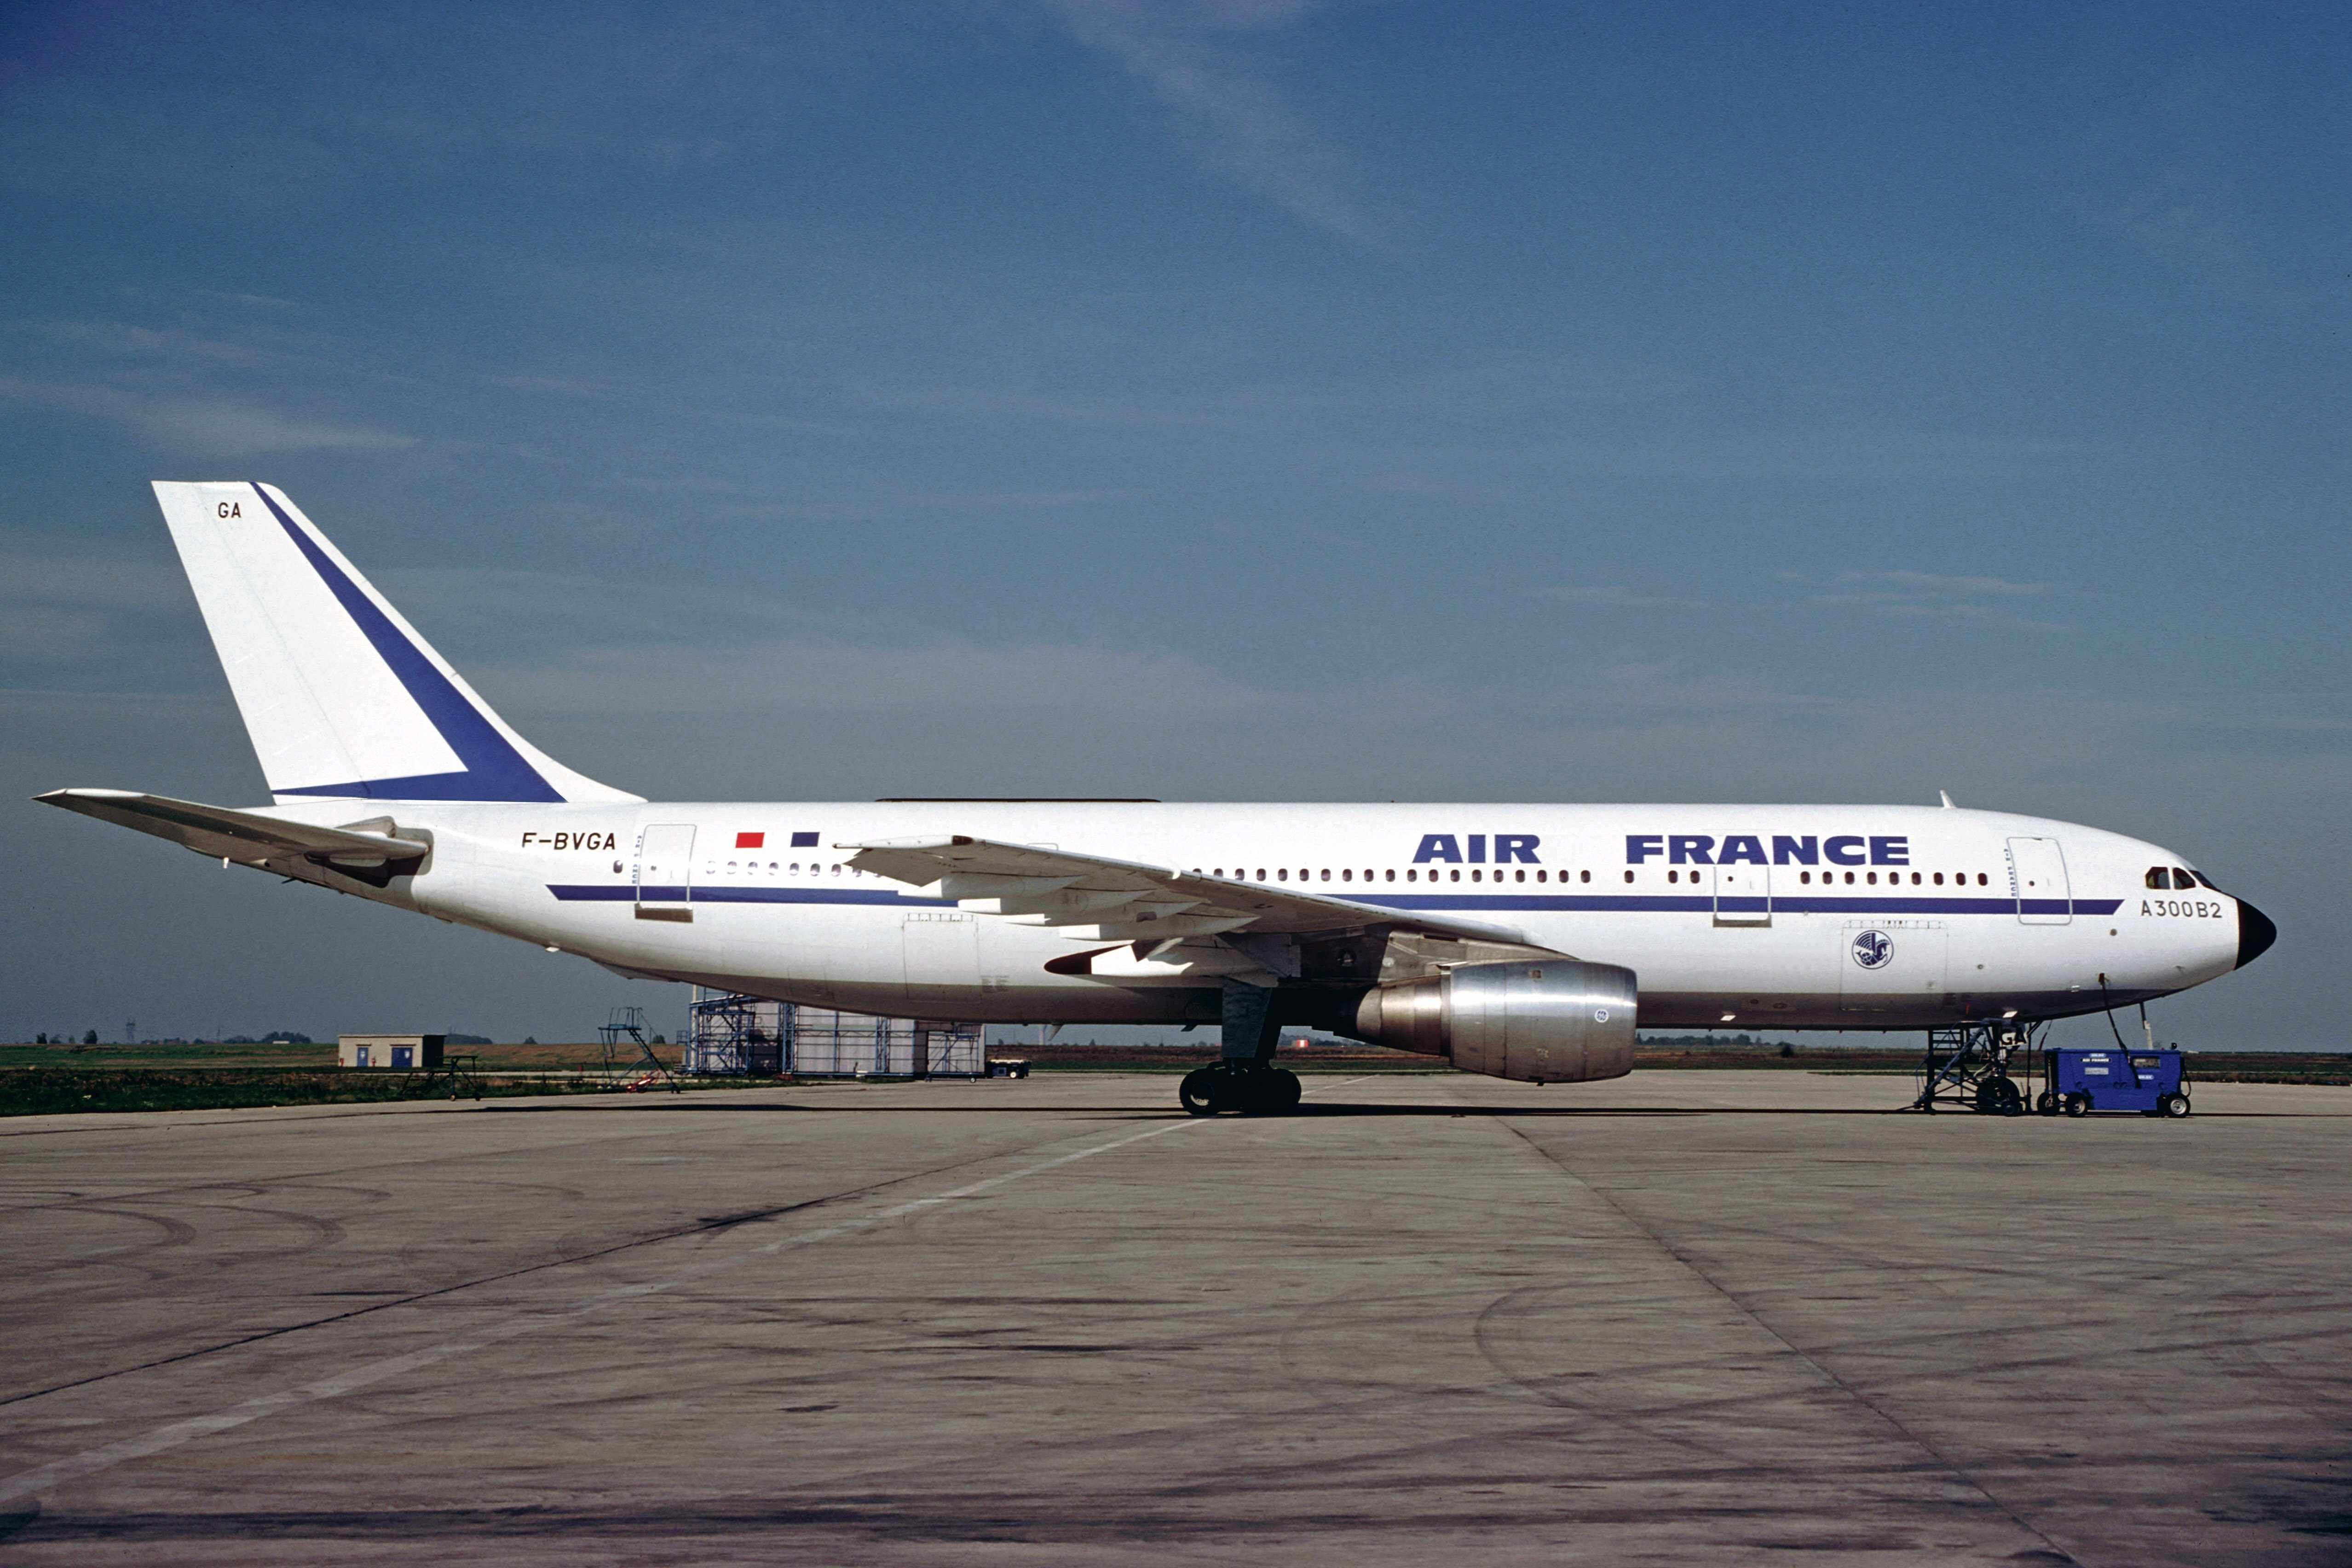 Air FranceAirbus A300 Real Flying Machines Pinterest